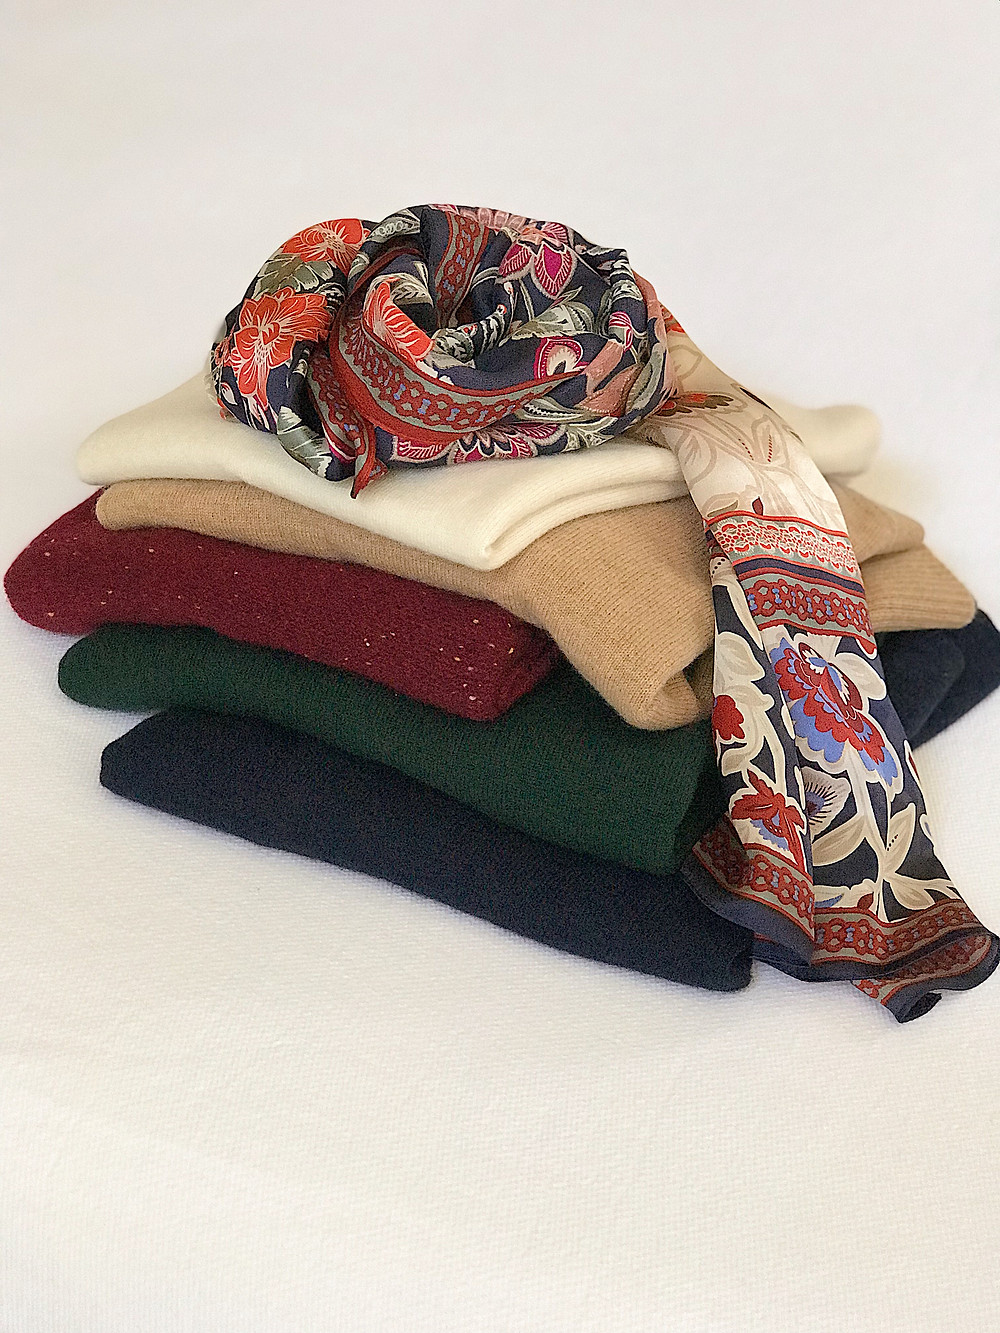 stack of folded sweaters in autumn hues